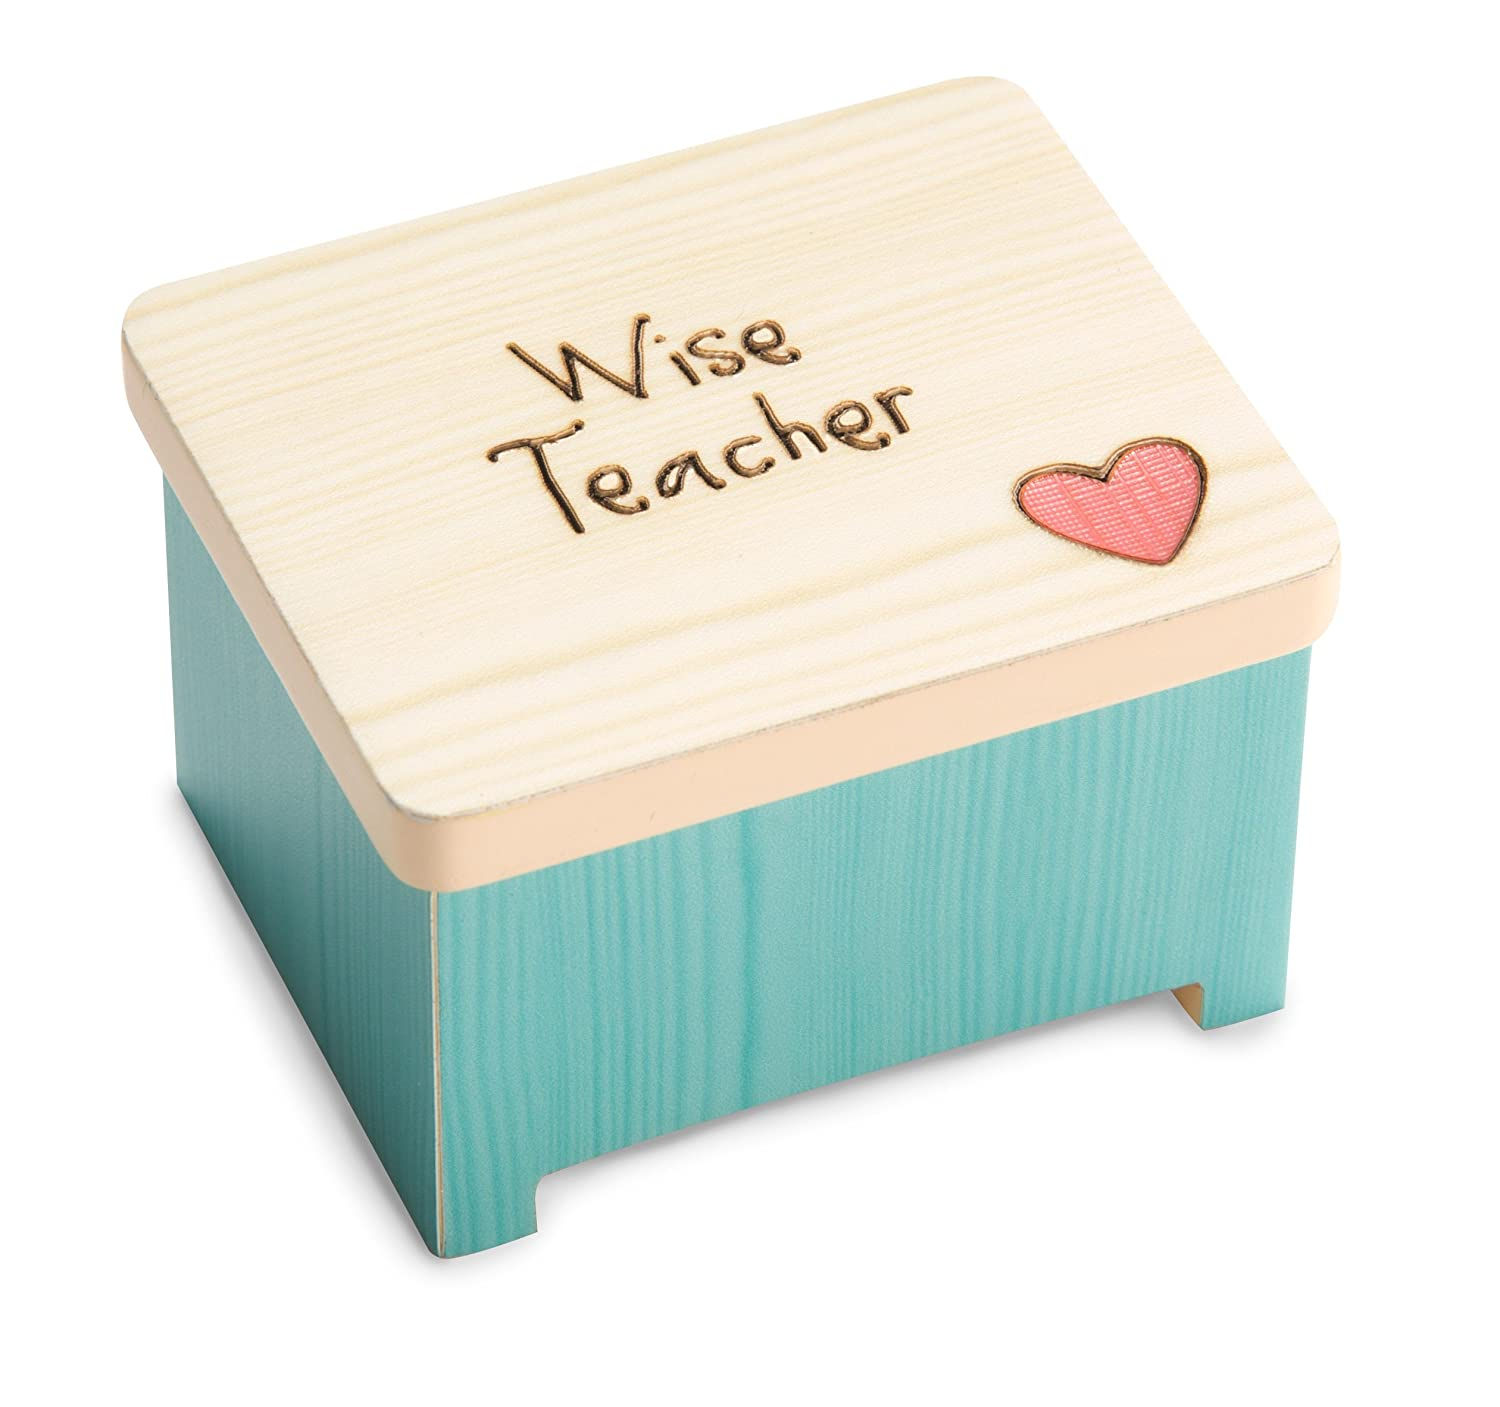 Pavilion Gift Company 78041 Wise Teacher Keepsake Box 2-3//8 by 1-1//2 by 2 2-3//8 by 1-1//2 by 2